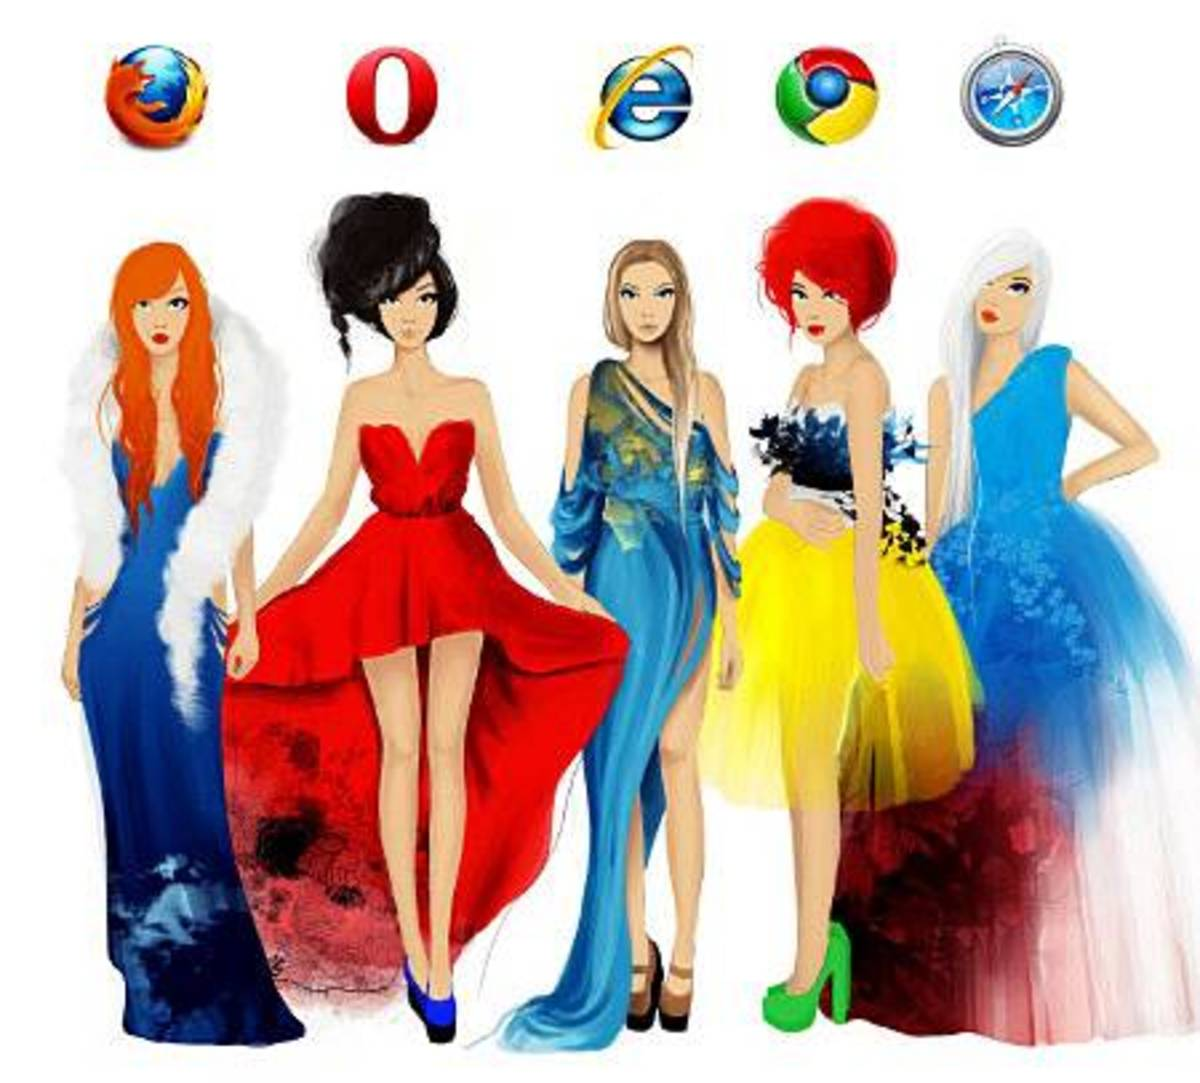 the ladies of the internet